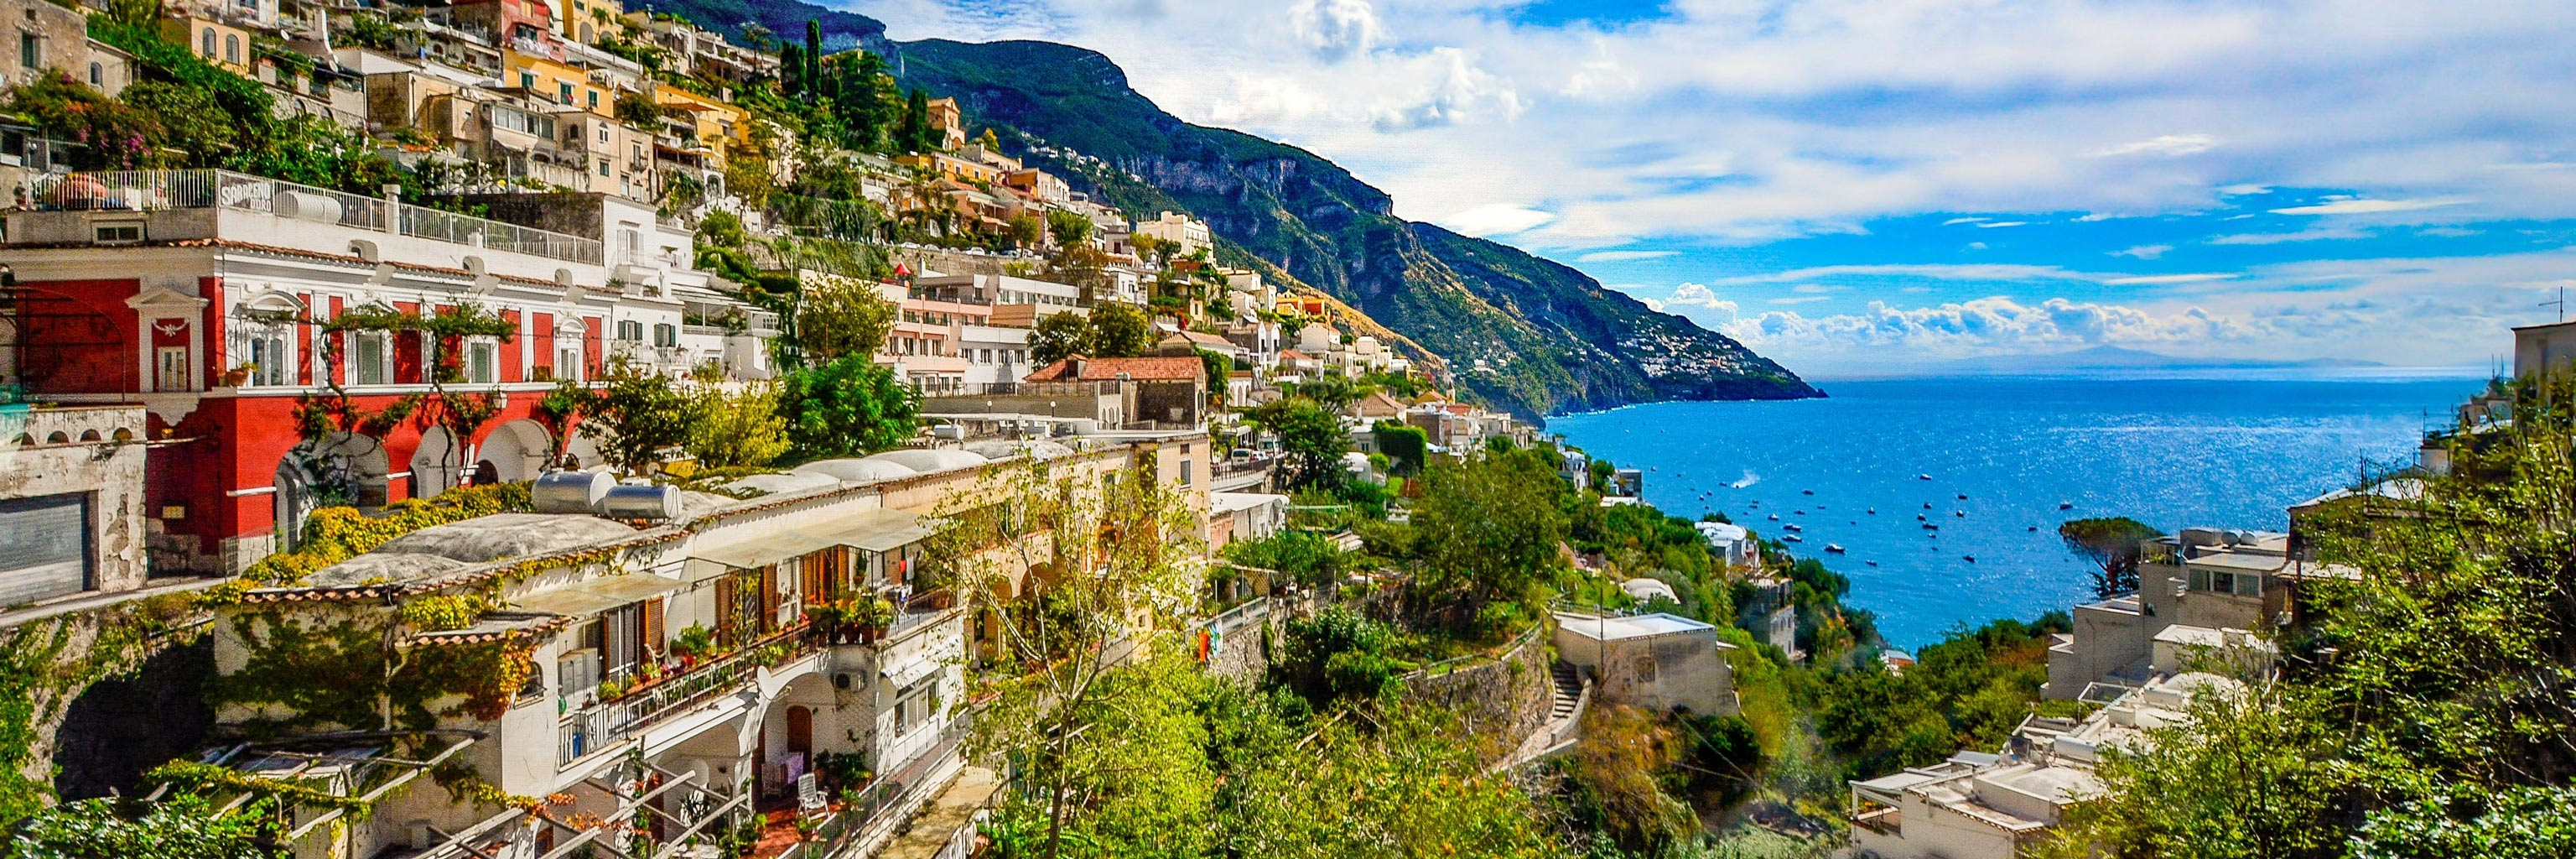 Colorful hillside overlooking the water in Salerno, Italy.